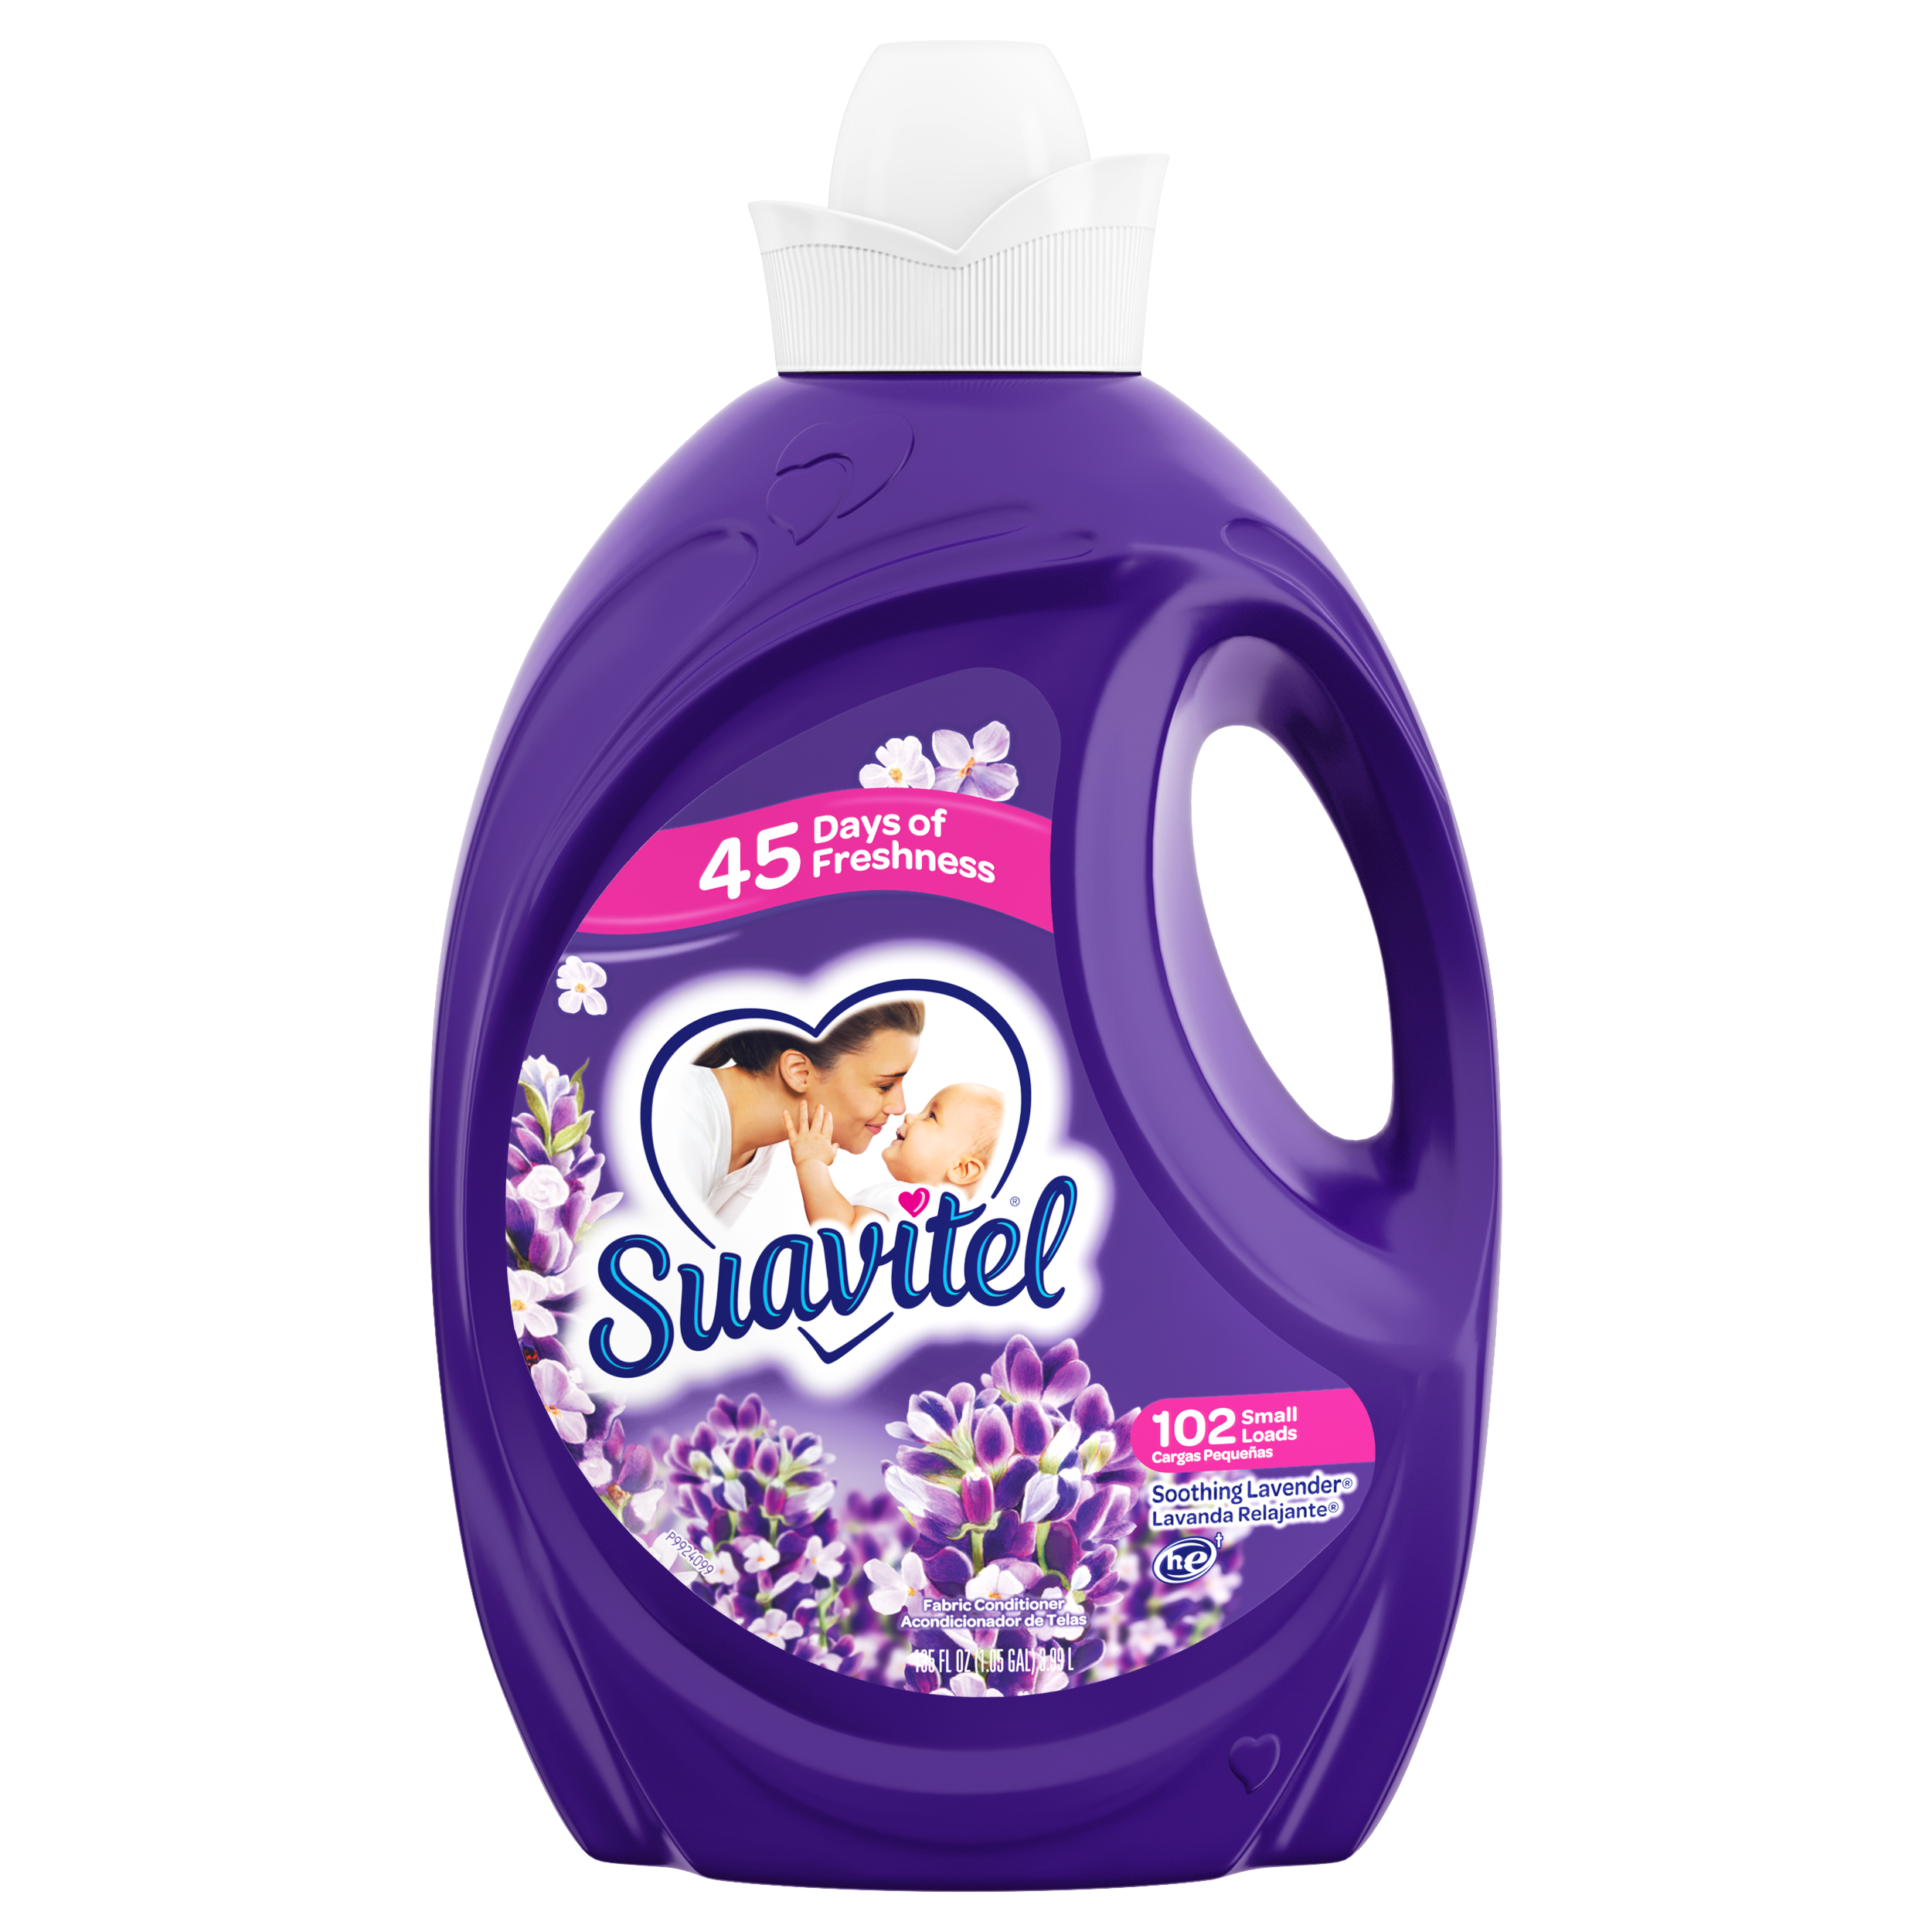 Suavitel Soothing Lavender Fabric Conditioner, 92 Small loads, 135 fl oz